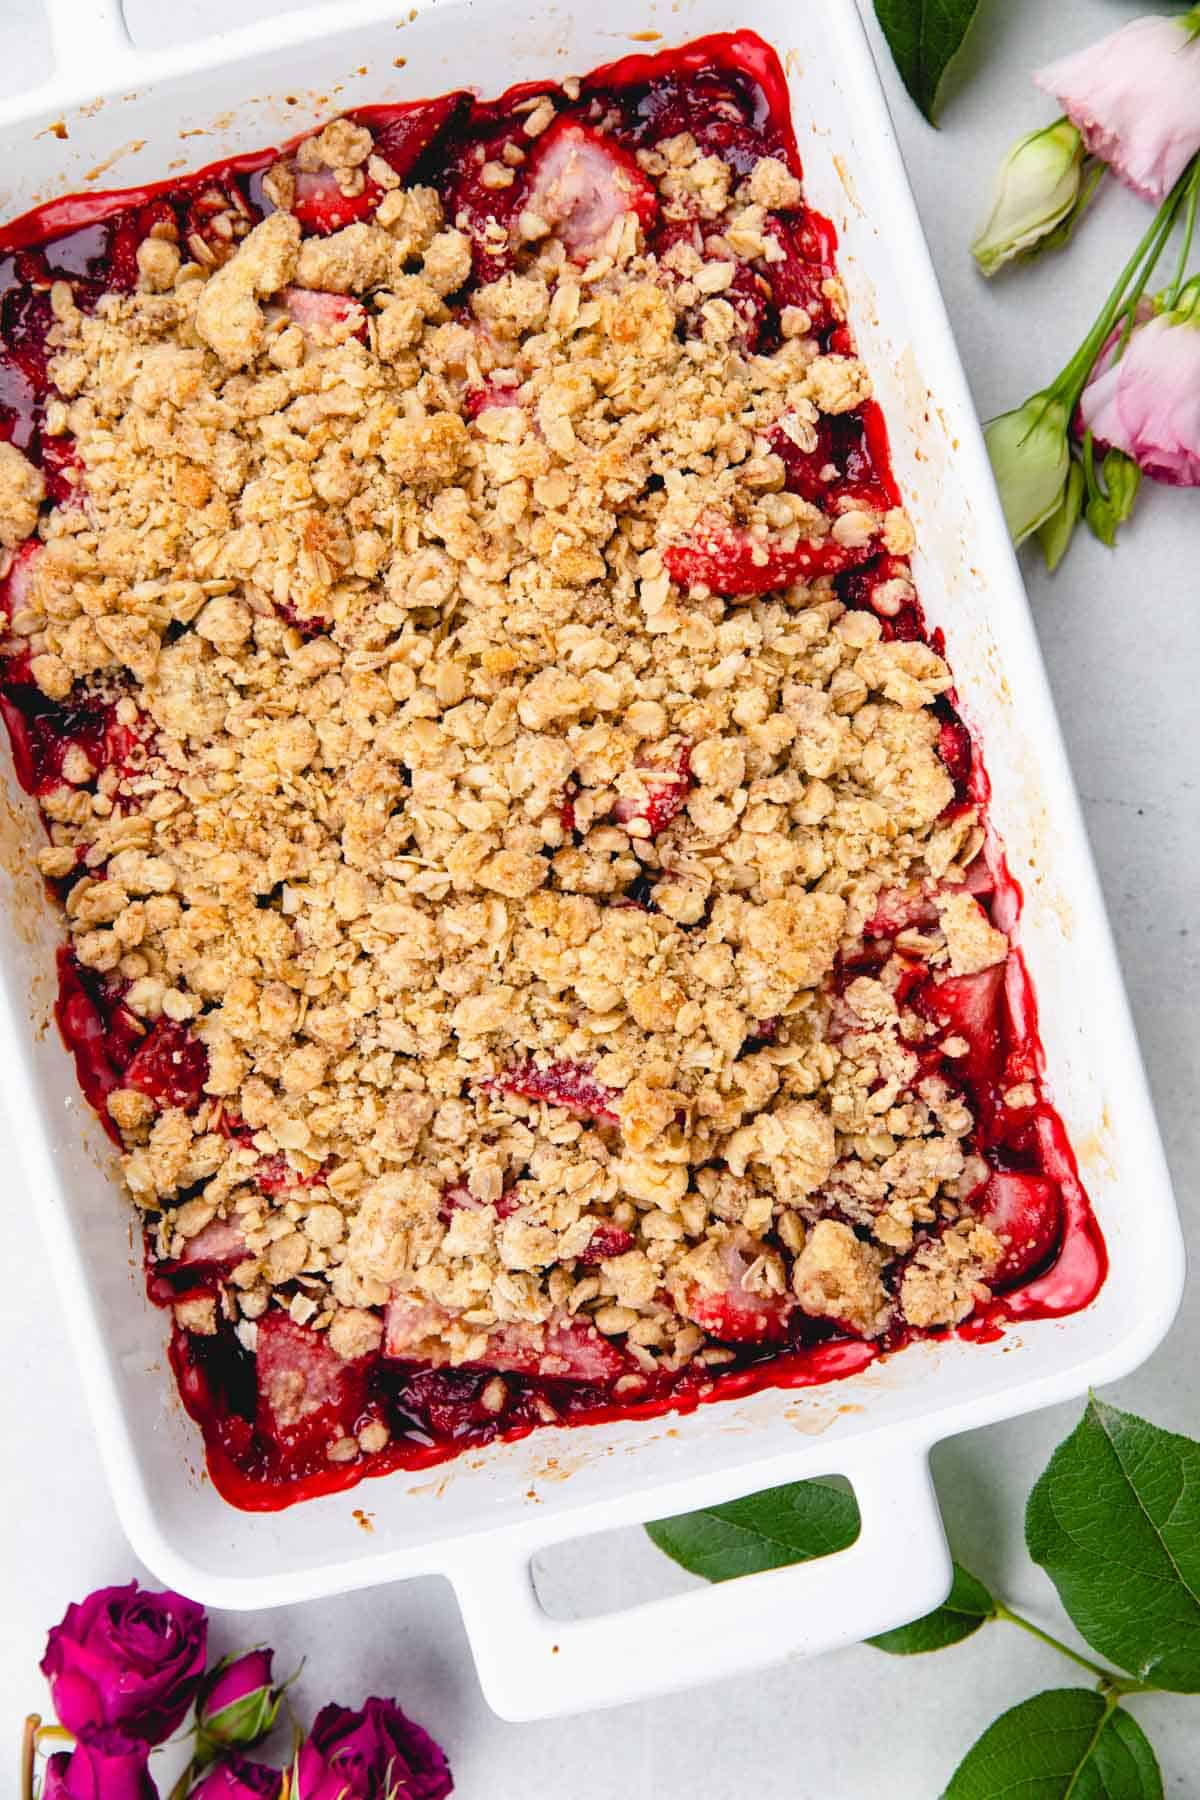 Strawberry Crumble in a white baking pan.